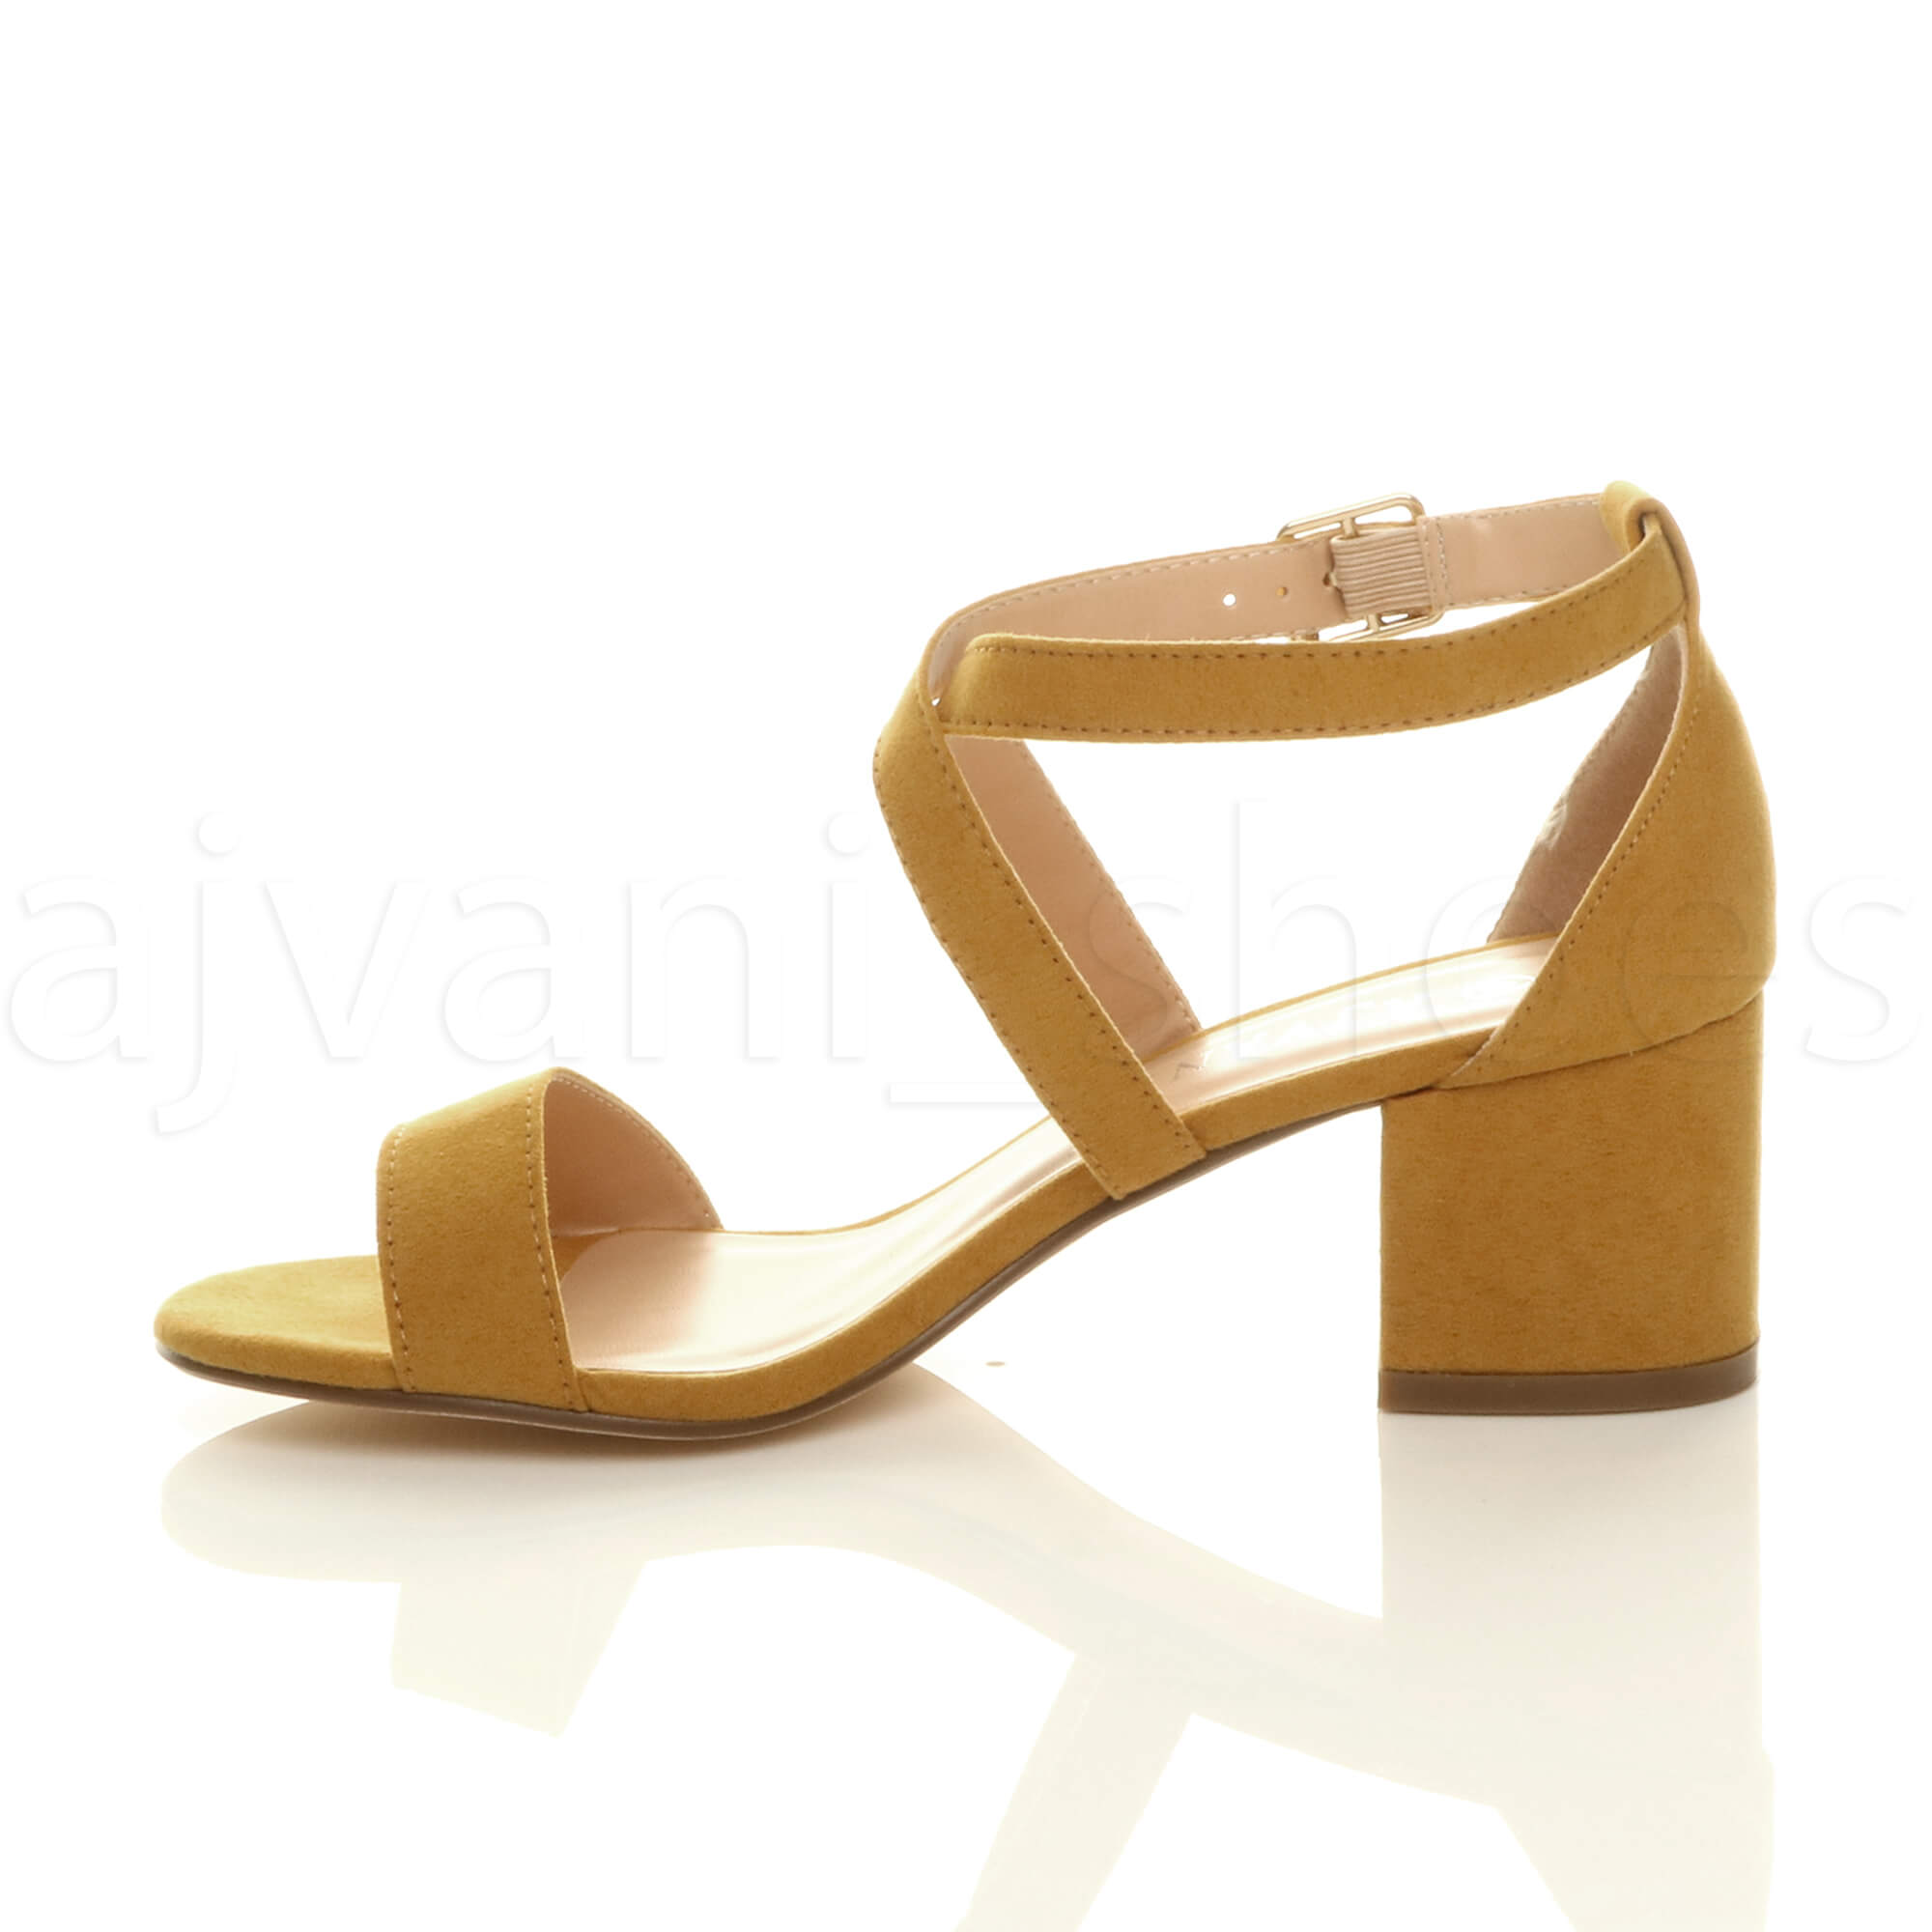 WOMENS-LADIES-MID-LOW-BLOCK-HEEL-CROSS-STRAPS-PARTY-STRAPPY-SANDALS-SHOES-SIZE thumbnail 43